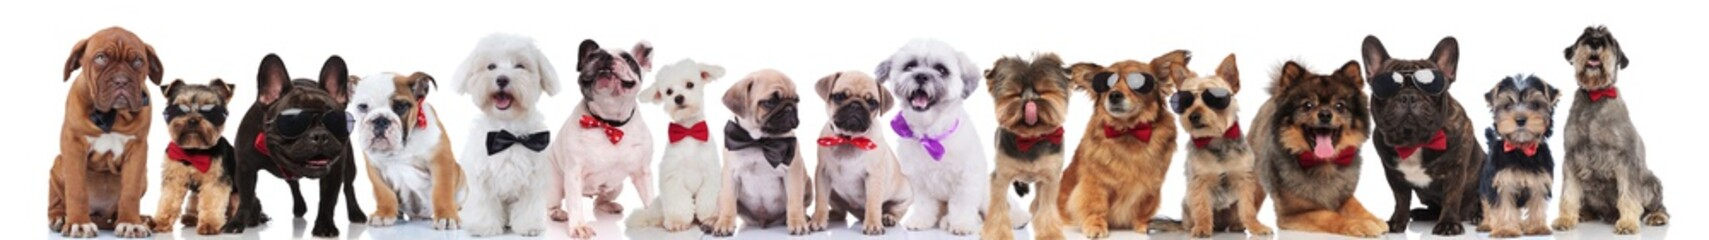 many stylish dogs of different breeds wearing bowties and sunglasses © Viorel Sima